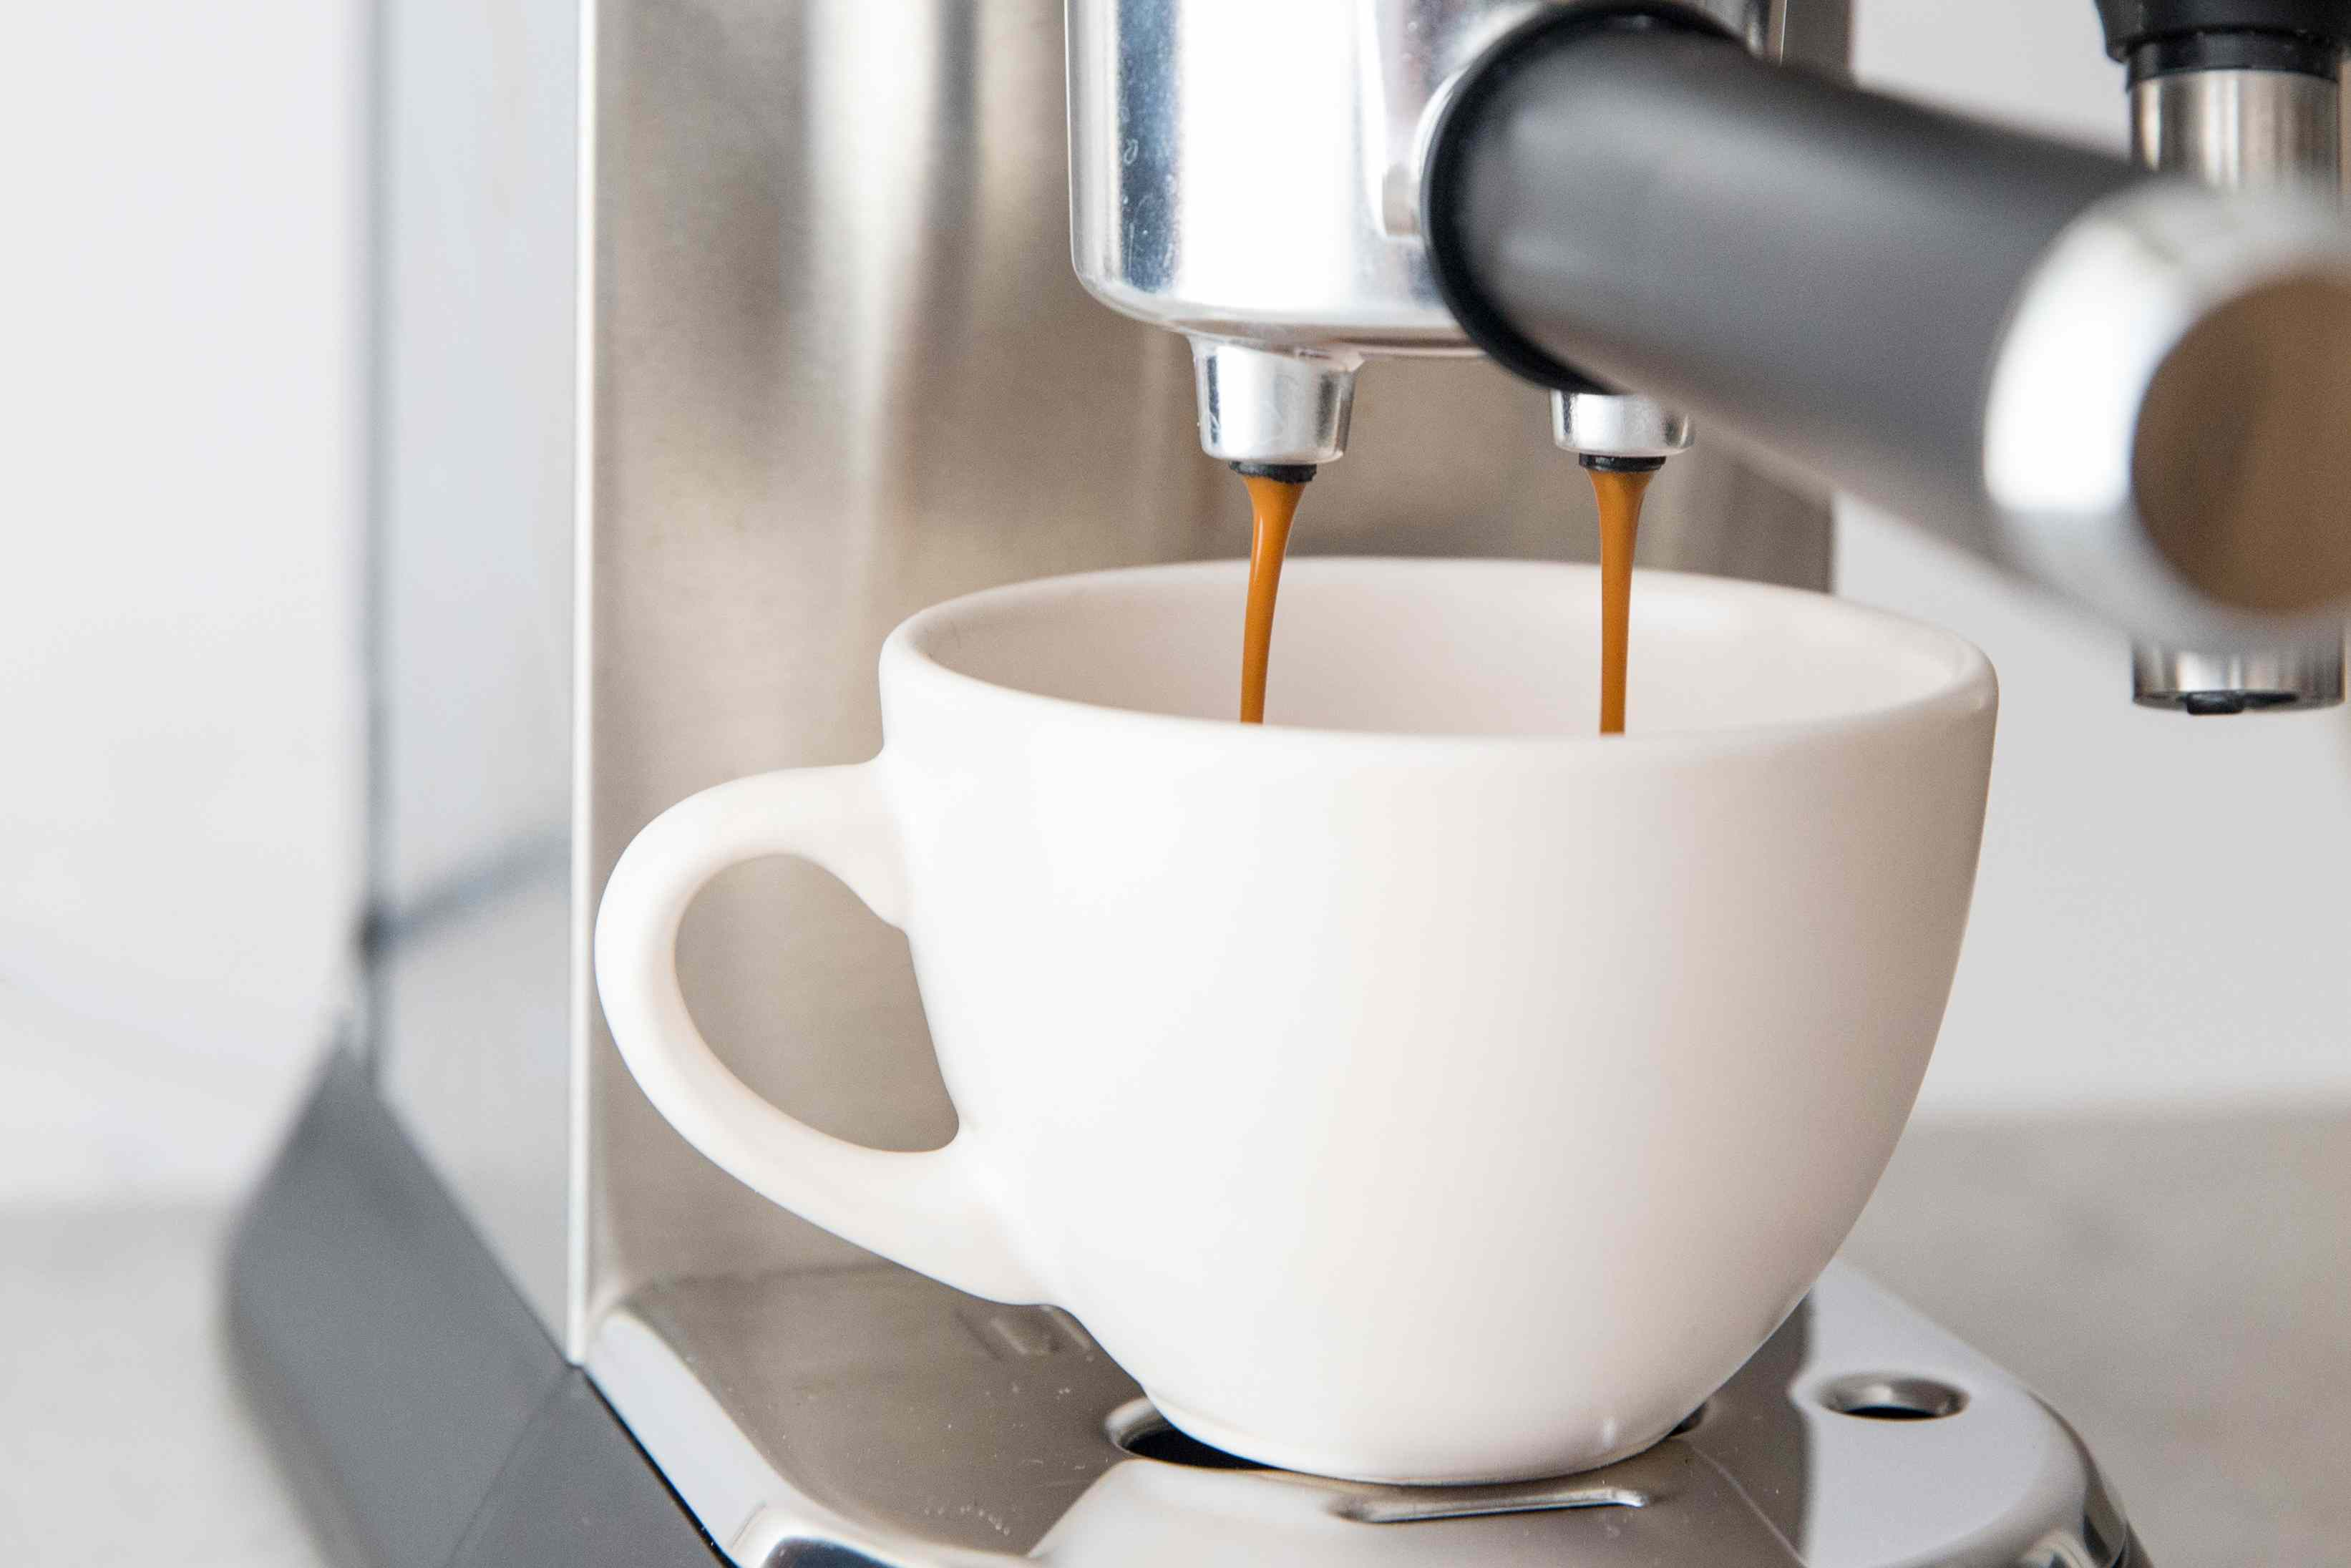 espresso pouring into a coffee cup from an espresso machine